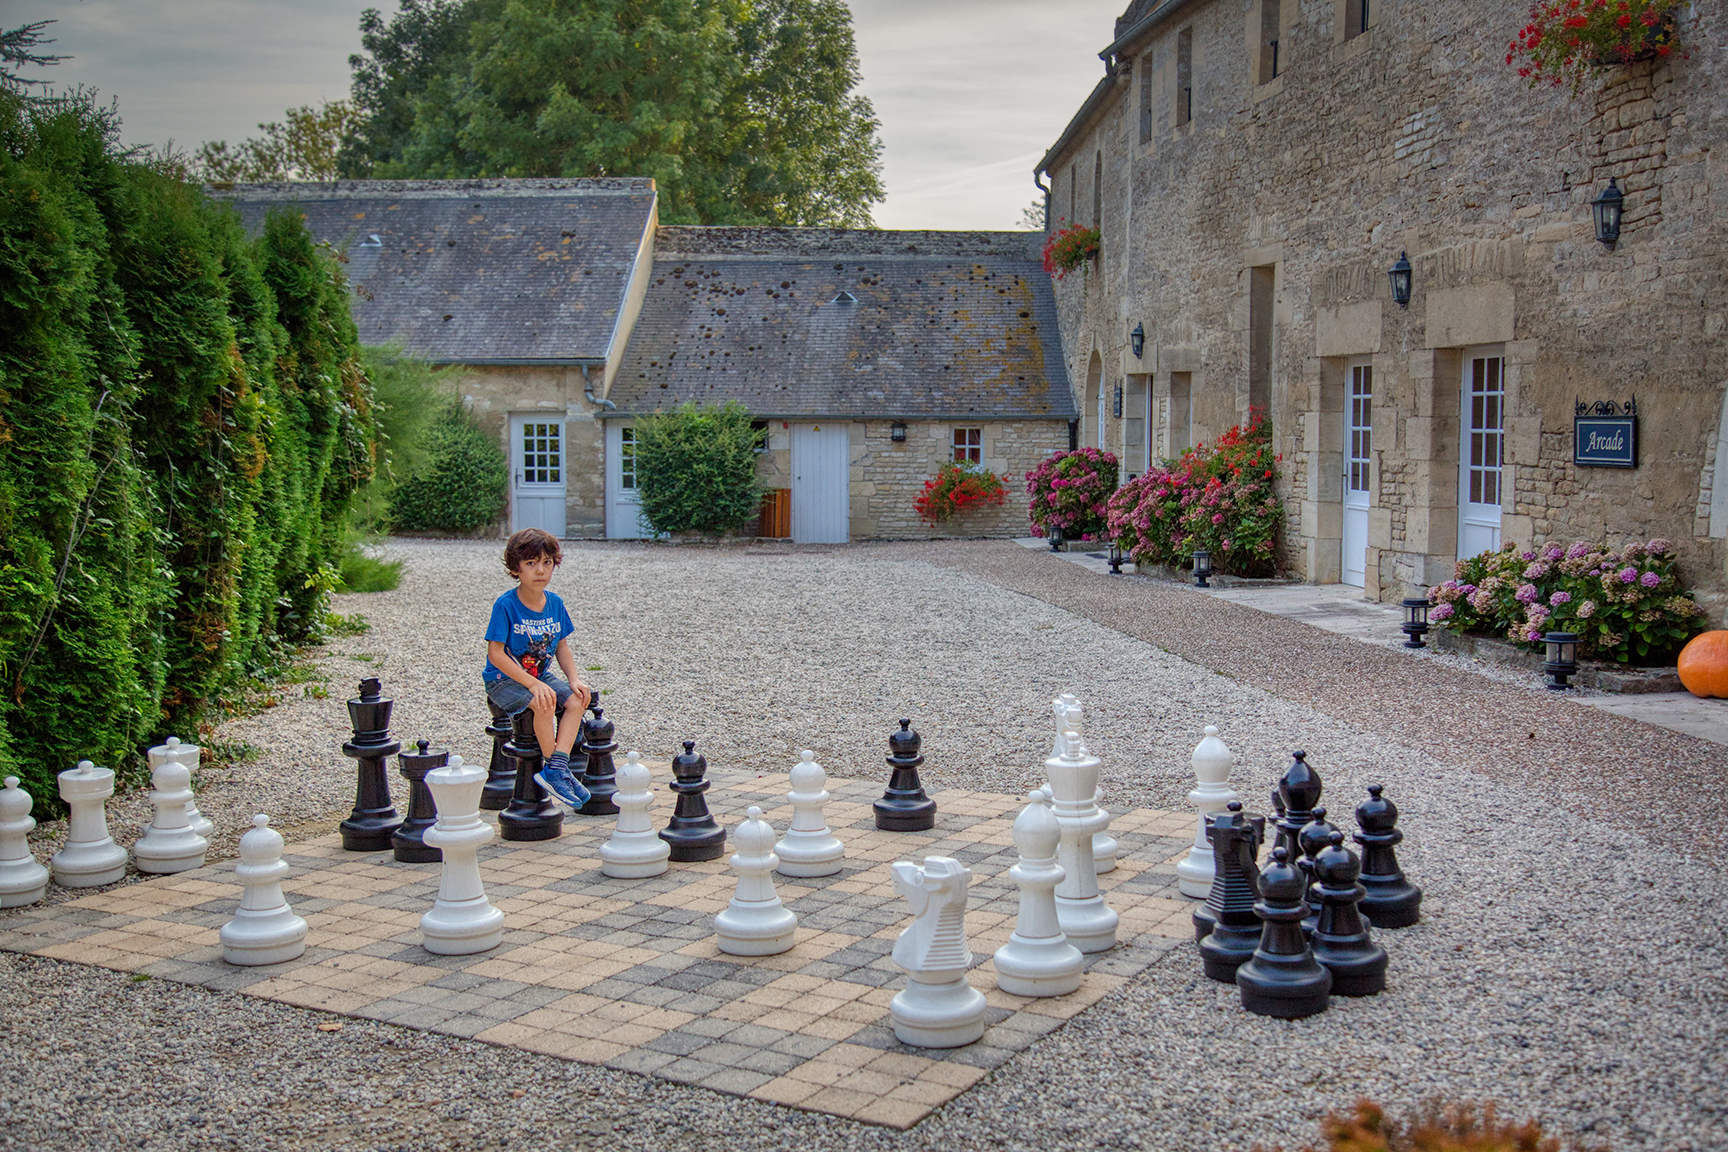 Big chess pieces